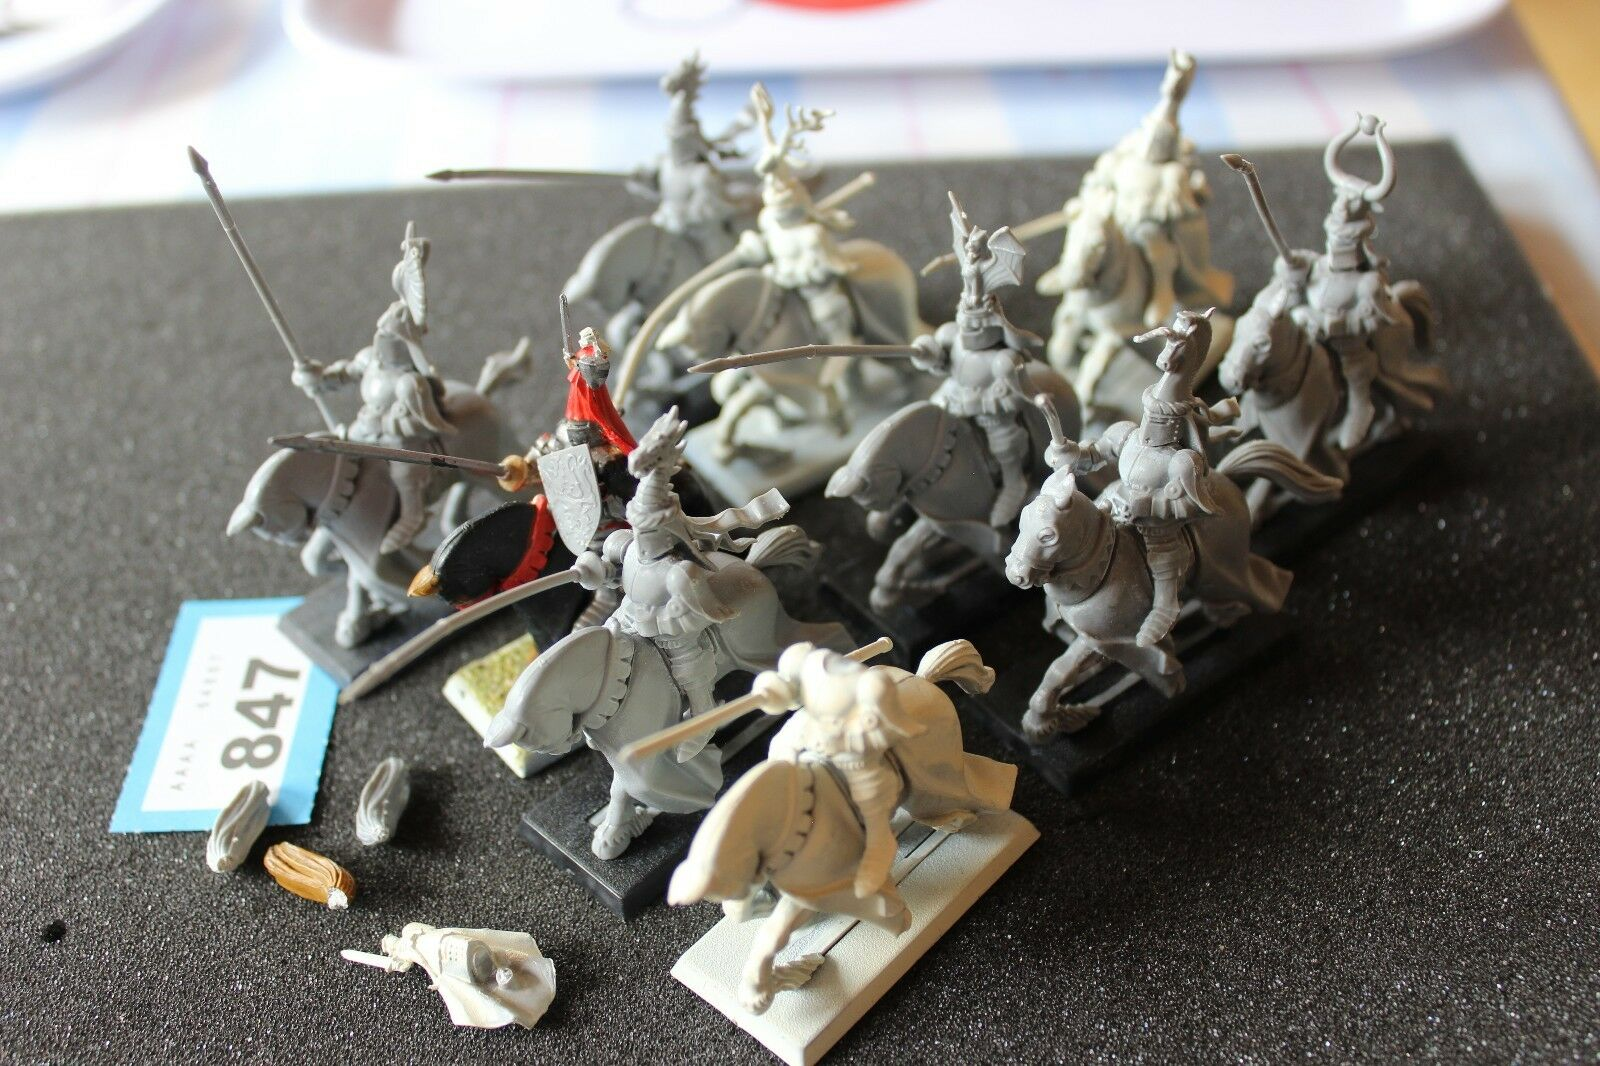 Games Workshop Warhammer Bretonnian Knights of the Realm 10 Models Army Regiment